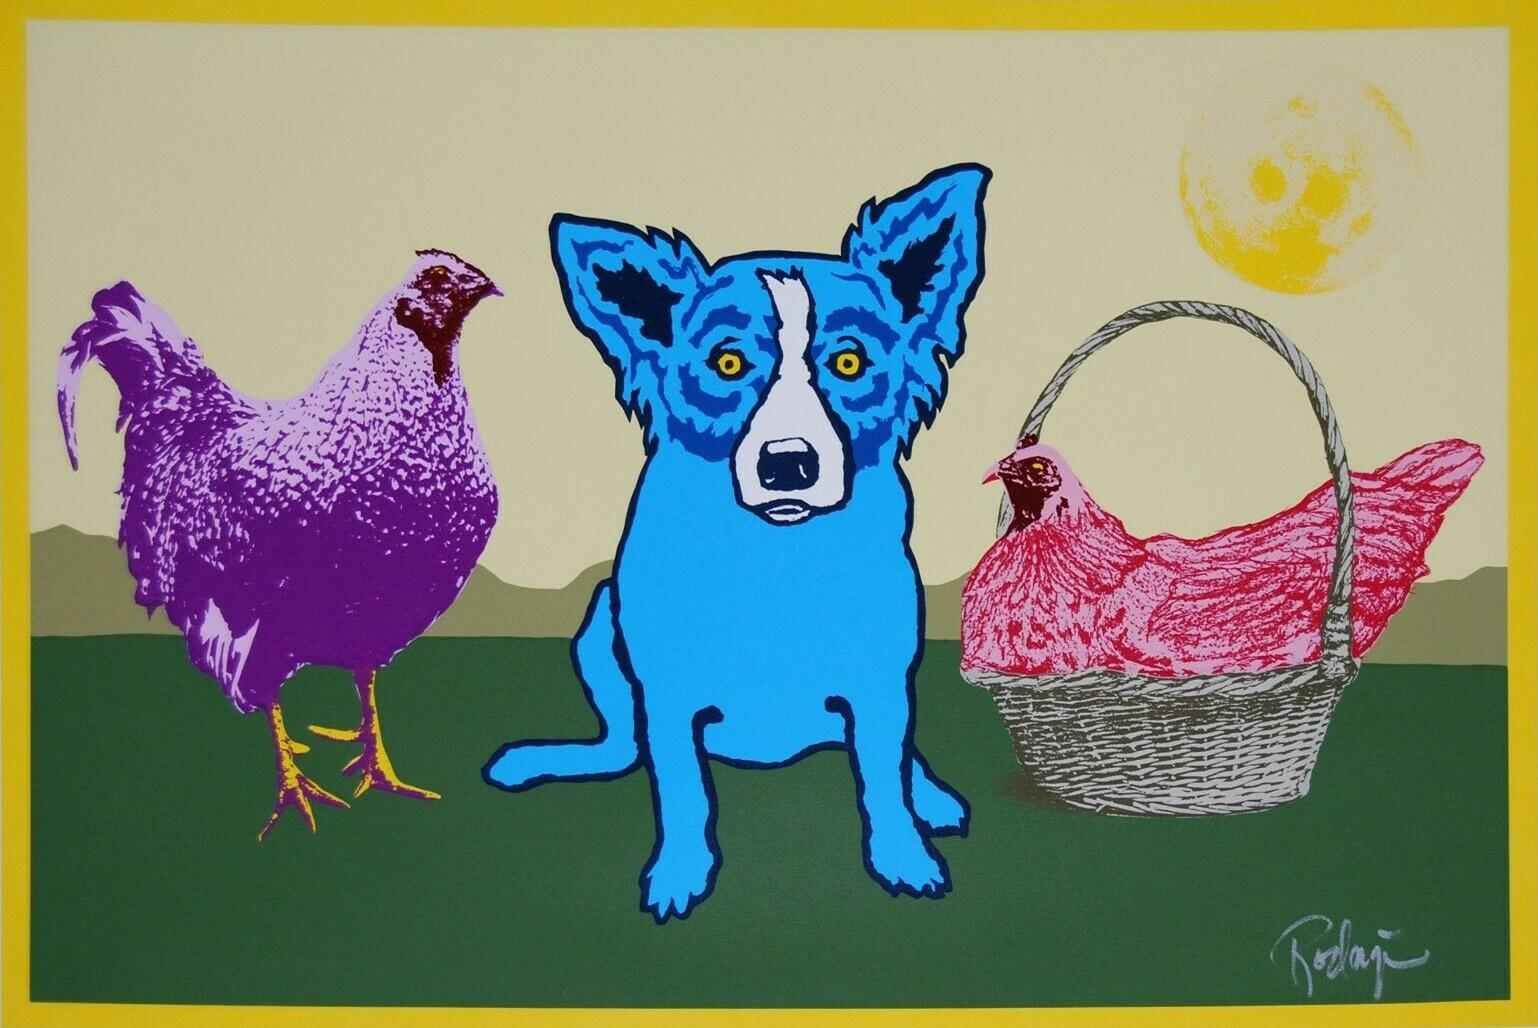 George Rodrigue Blue Dog Chicken In A Basket Yellow Moon Home Decor Handpainted &HD Print Oil Paintings On Canvas Wall Art Pictures 200113